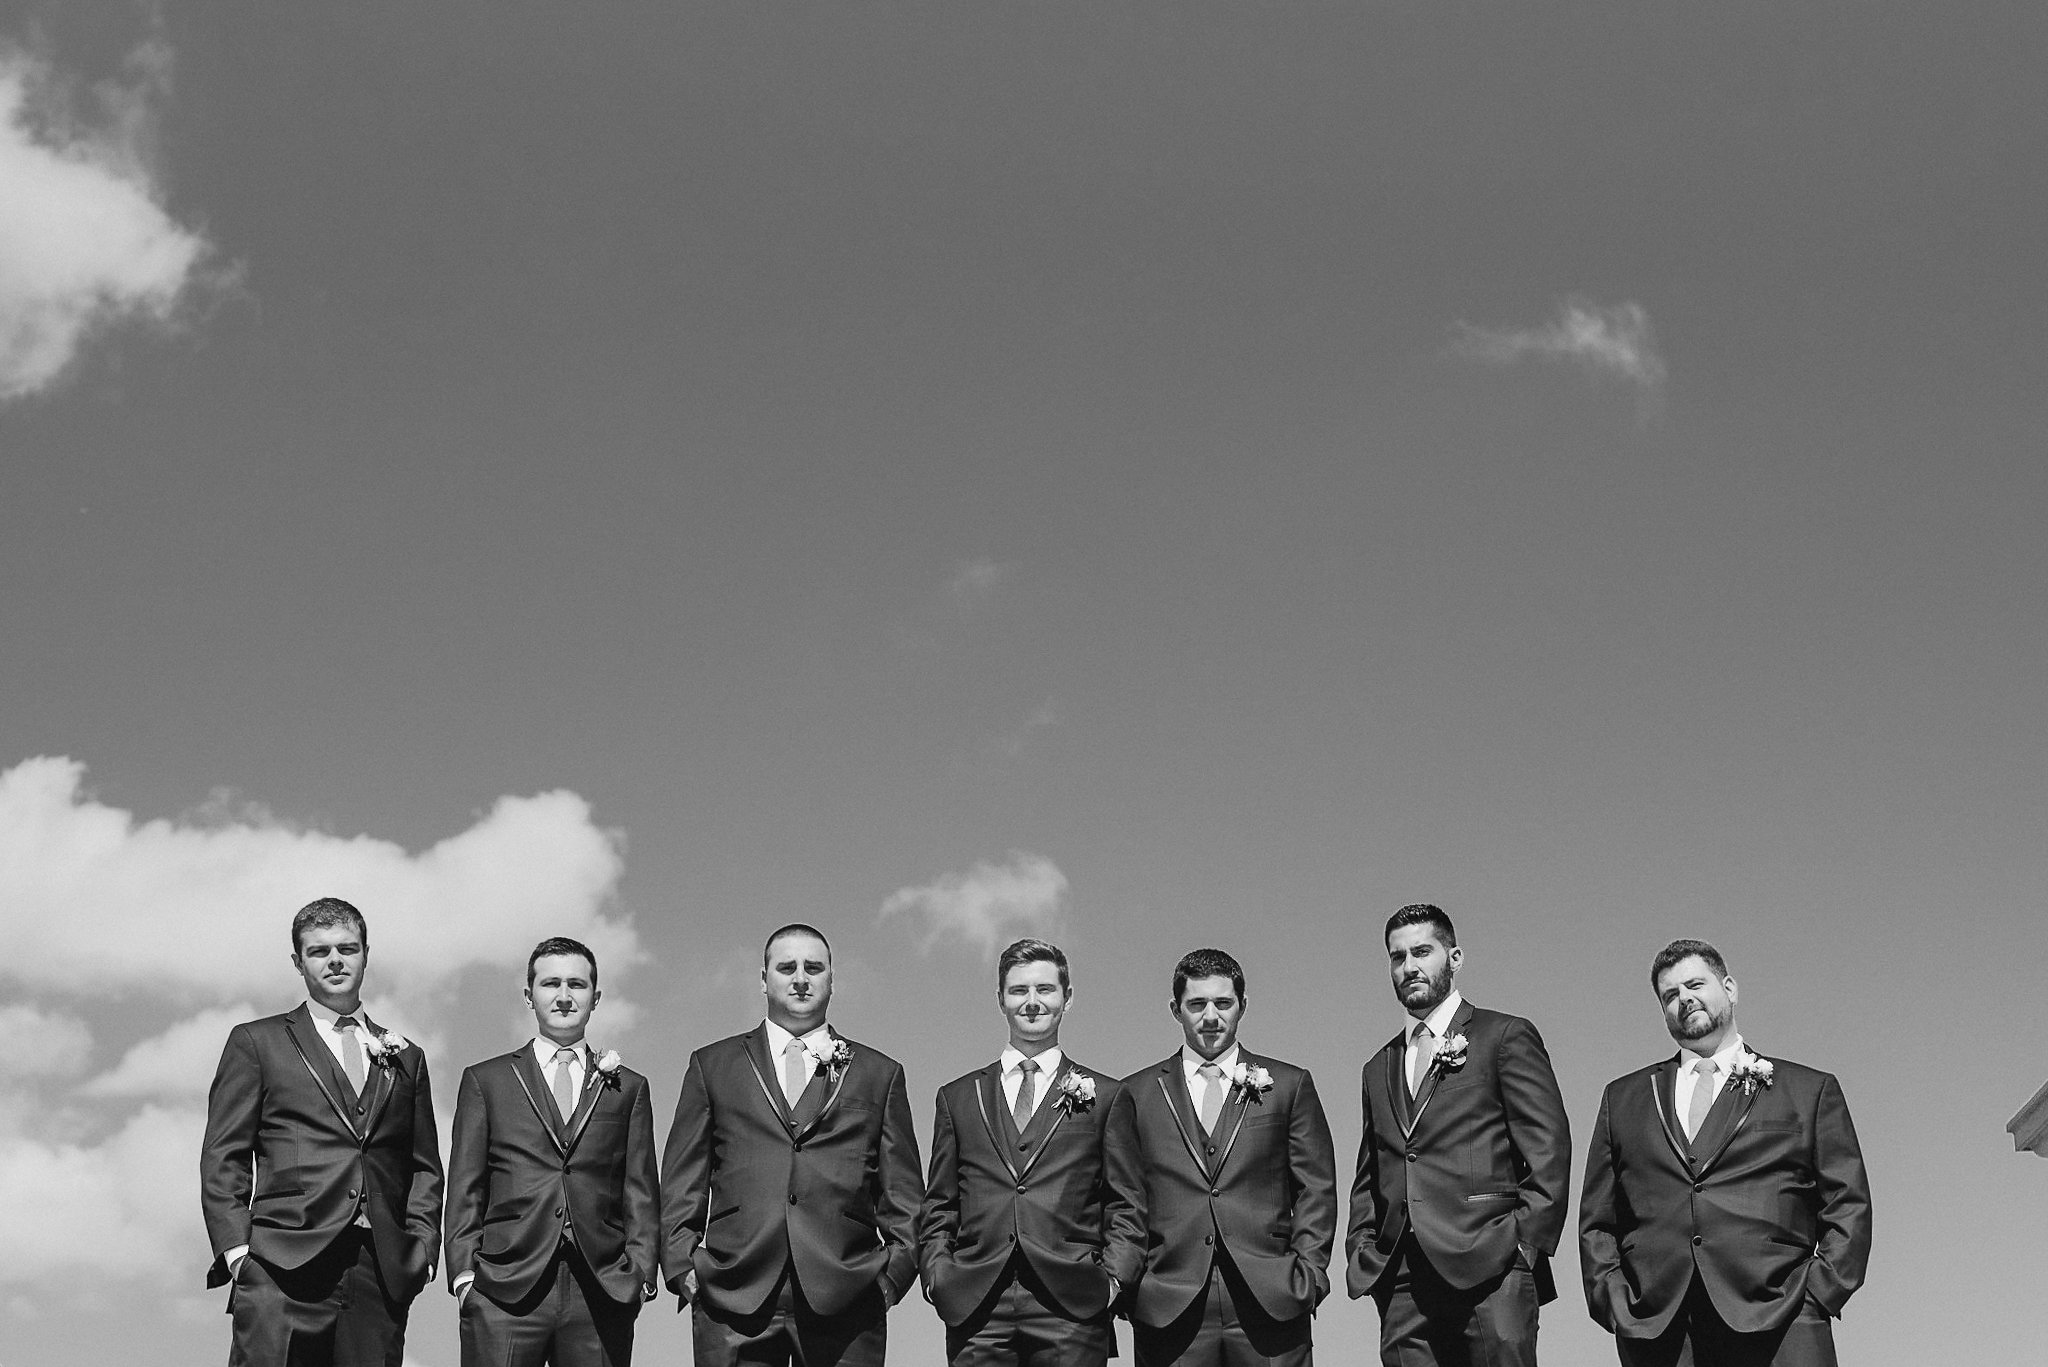 Groom and groomsmen in black and white